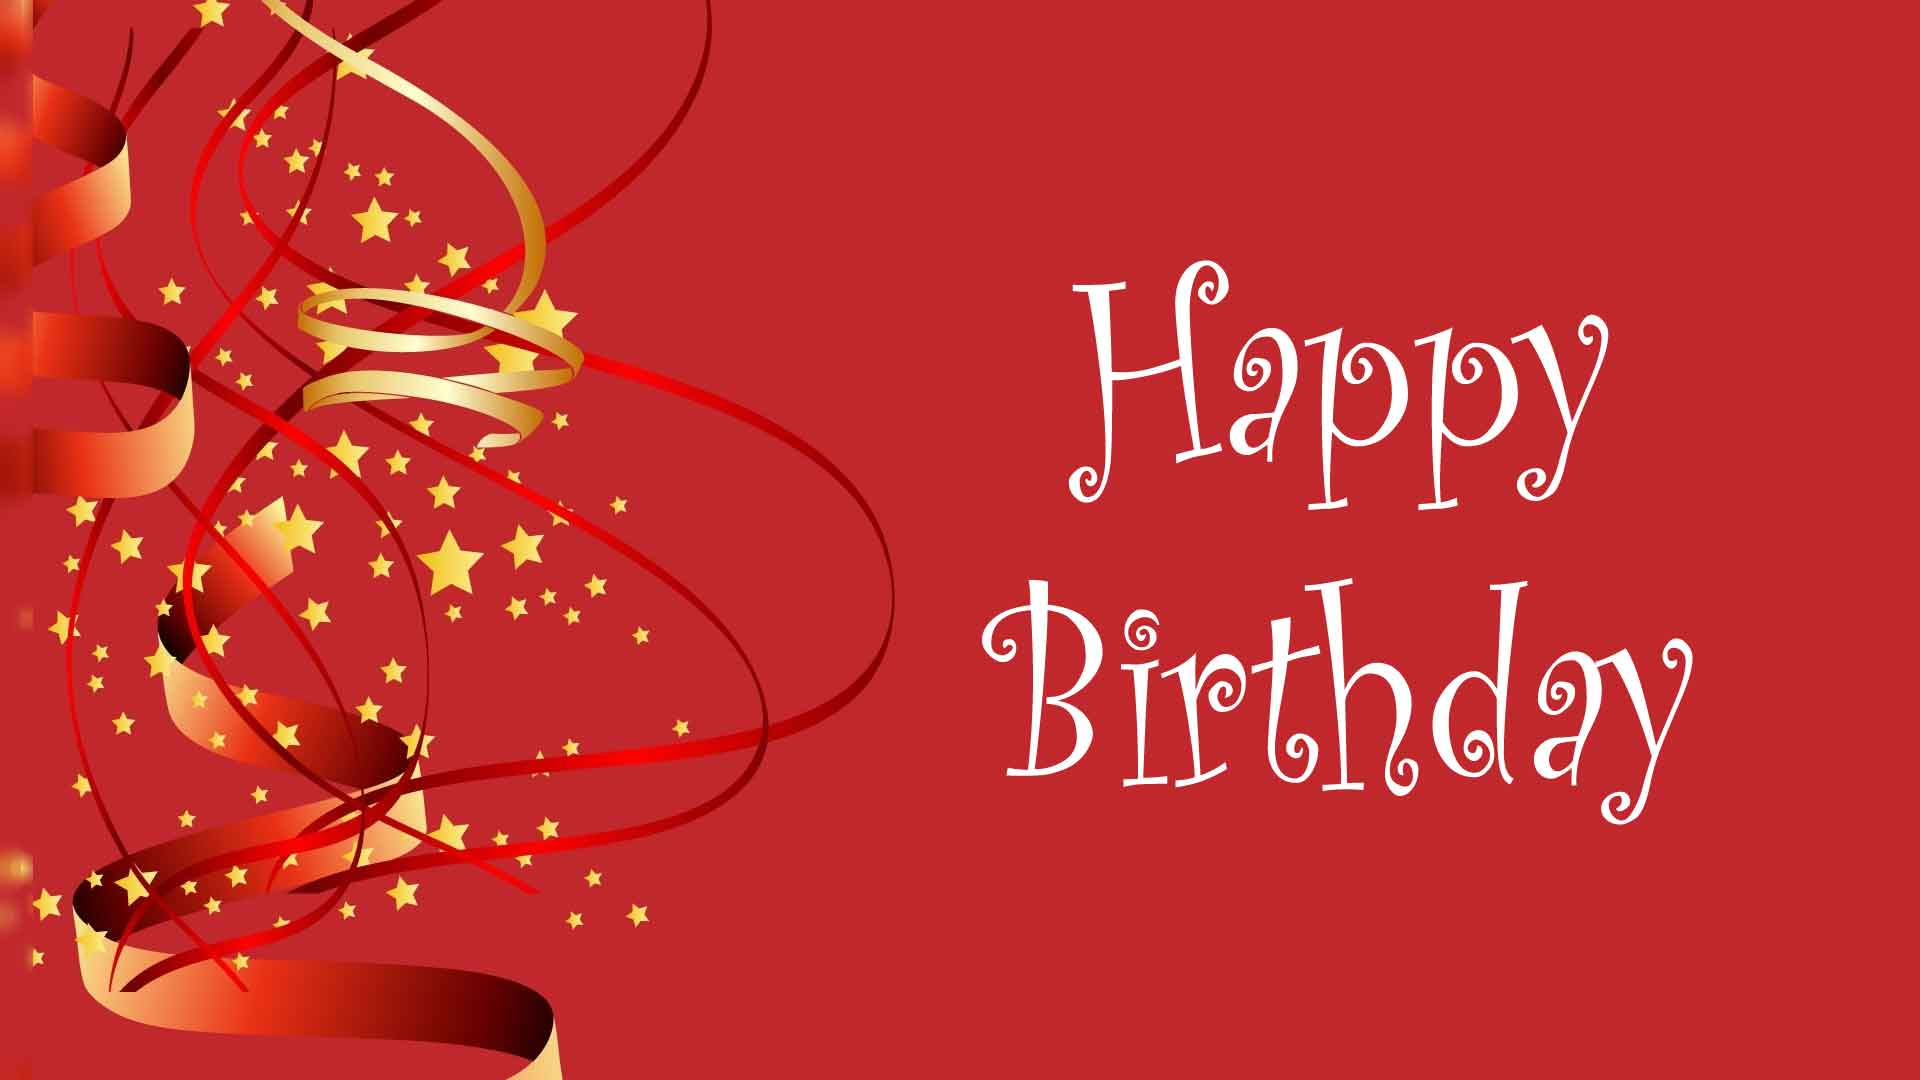 Nice Wallpapers Happy New Year Greetings Quotes 1080p Birthday Background Wallpaper Sf Wallpaper